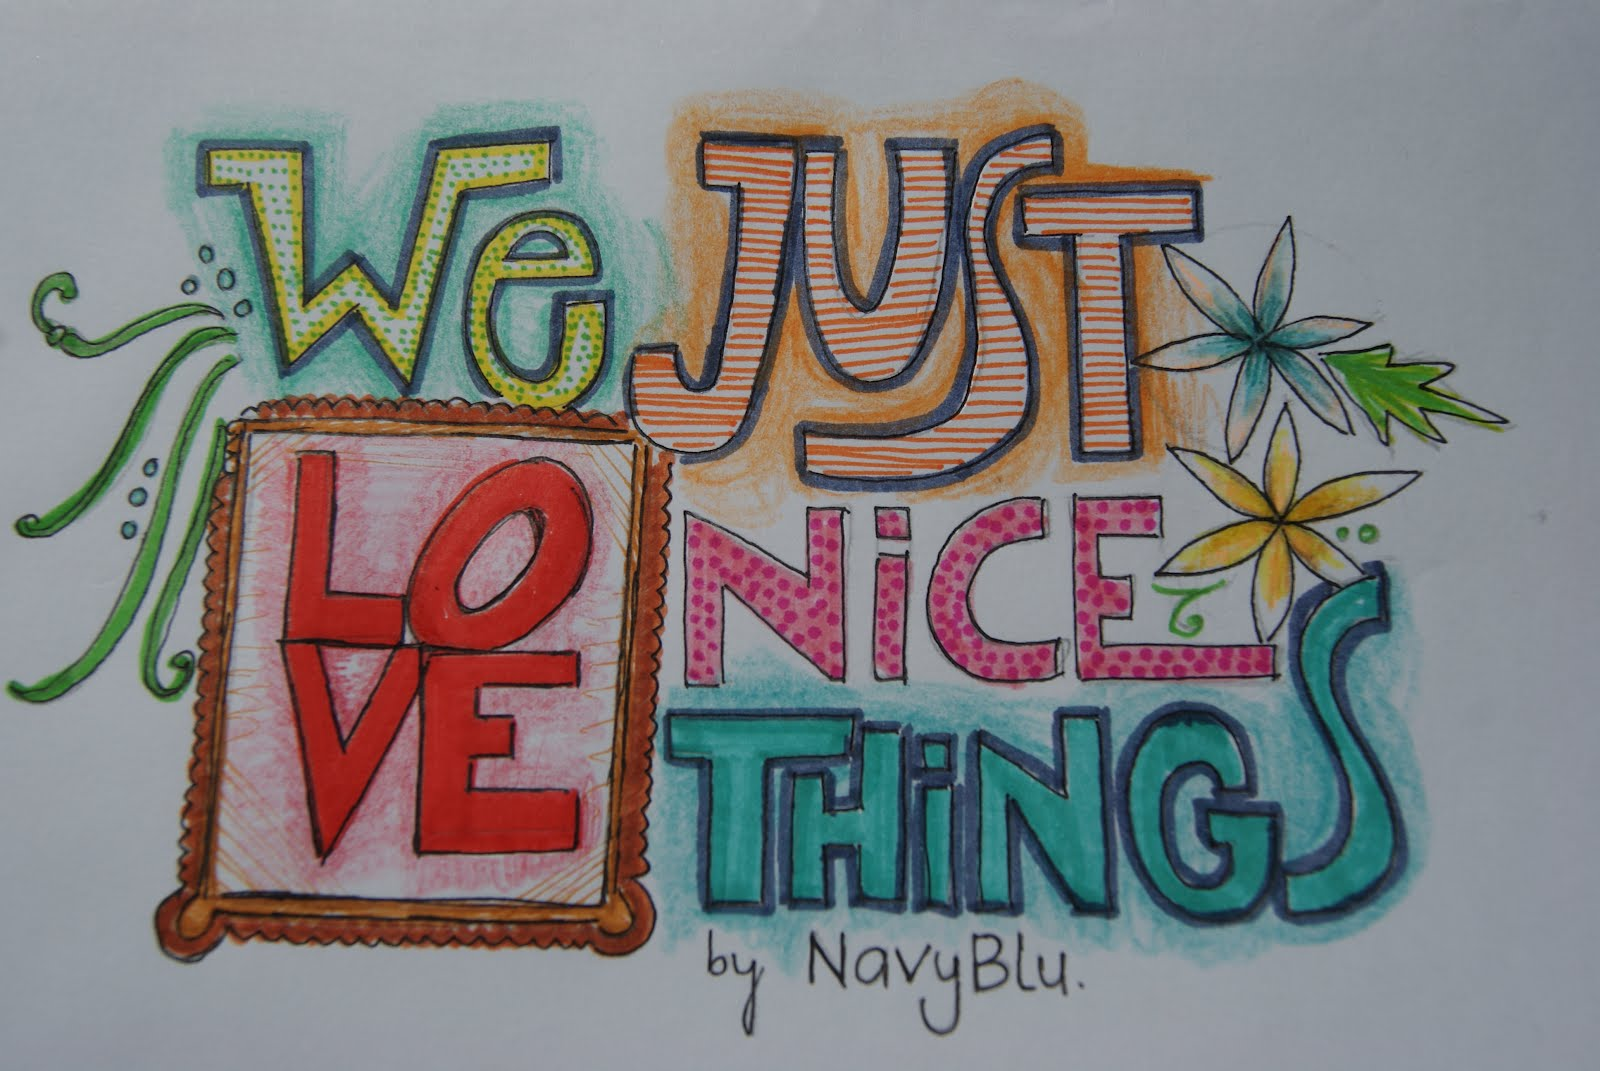 We love nice things!